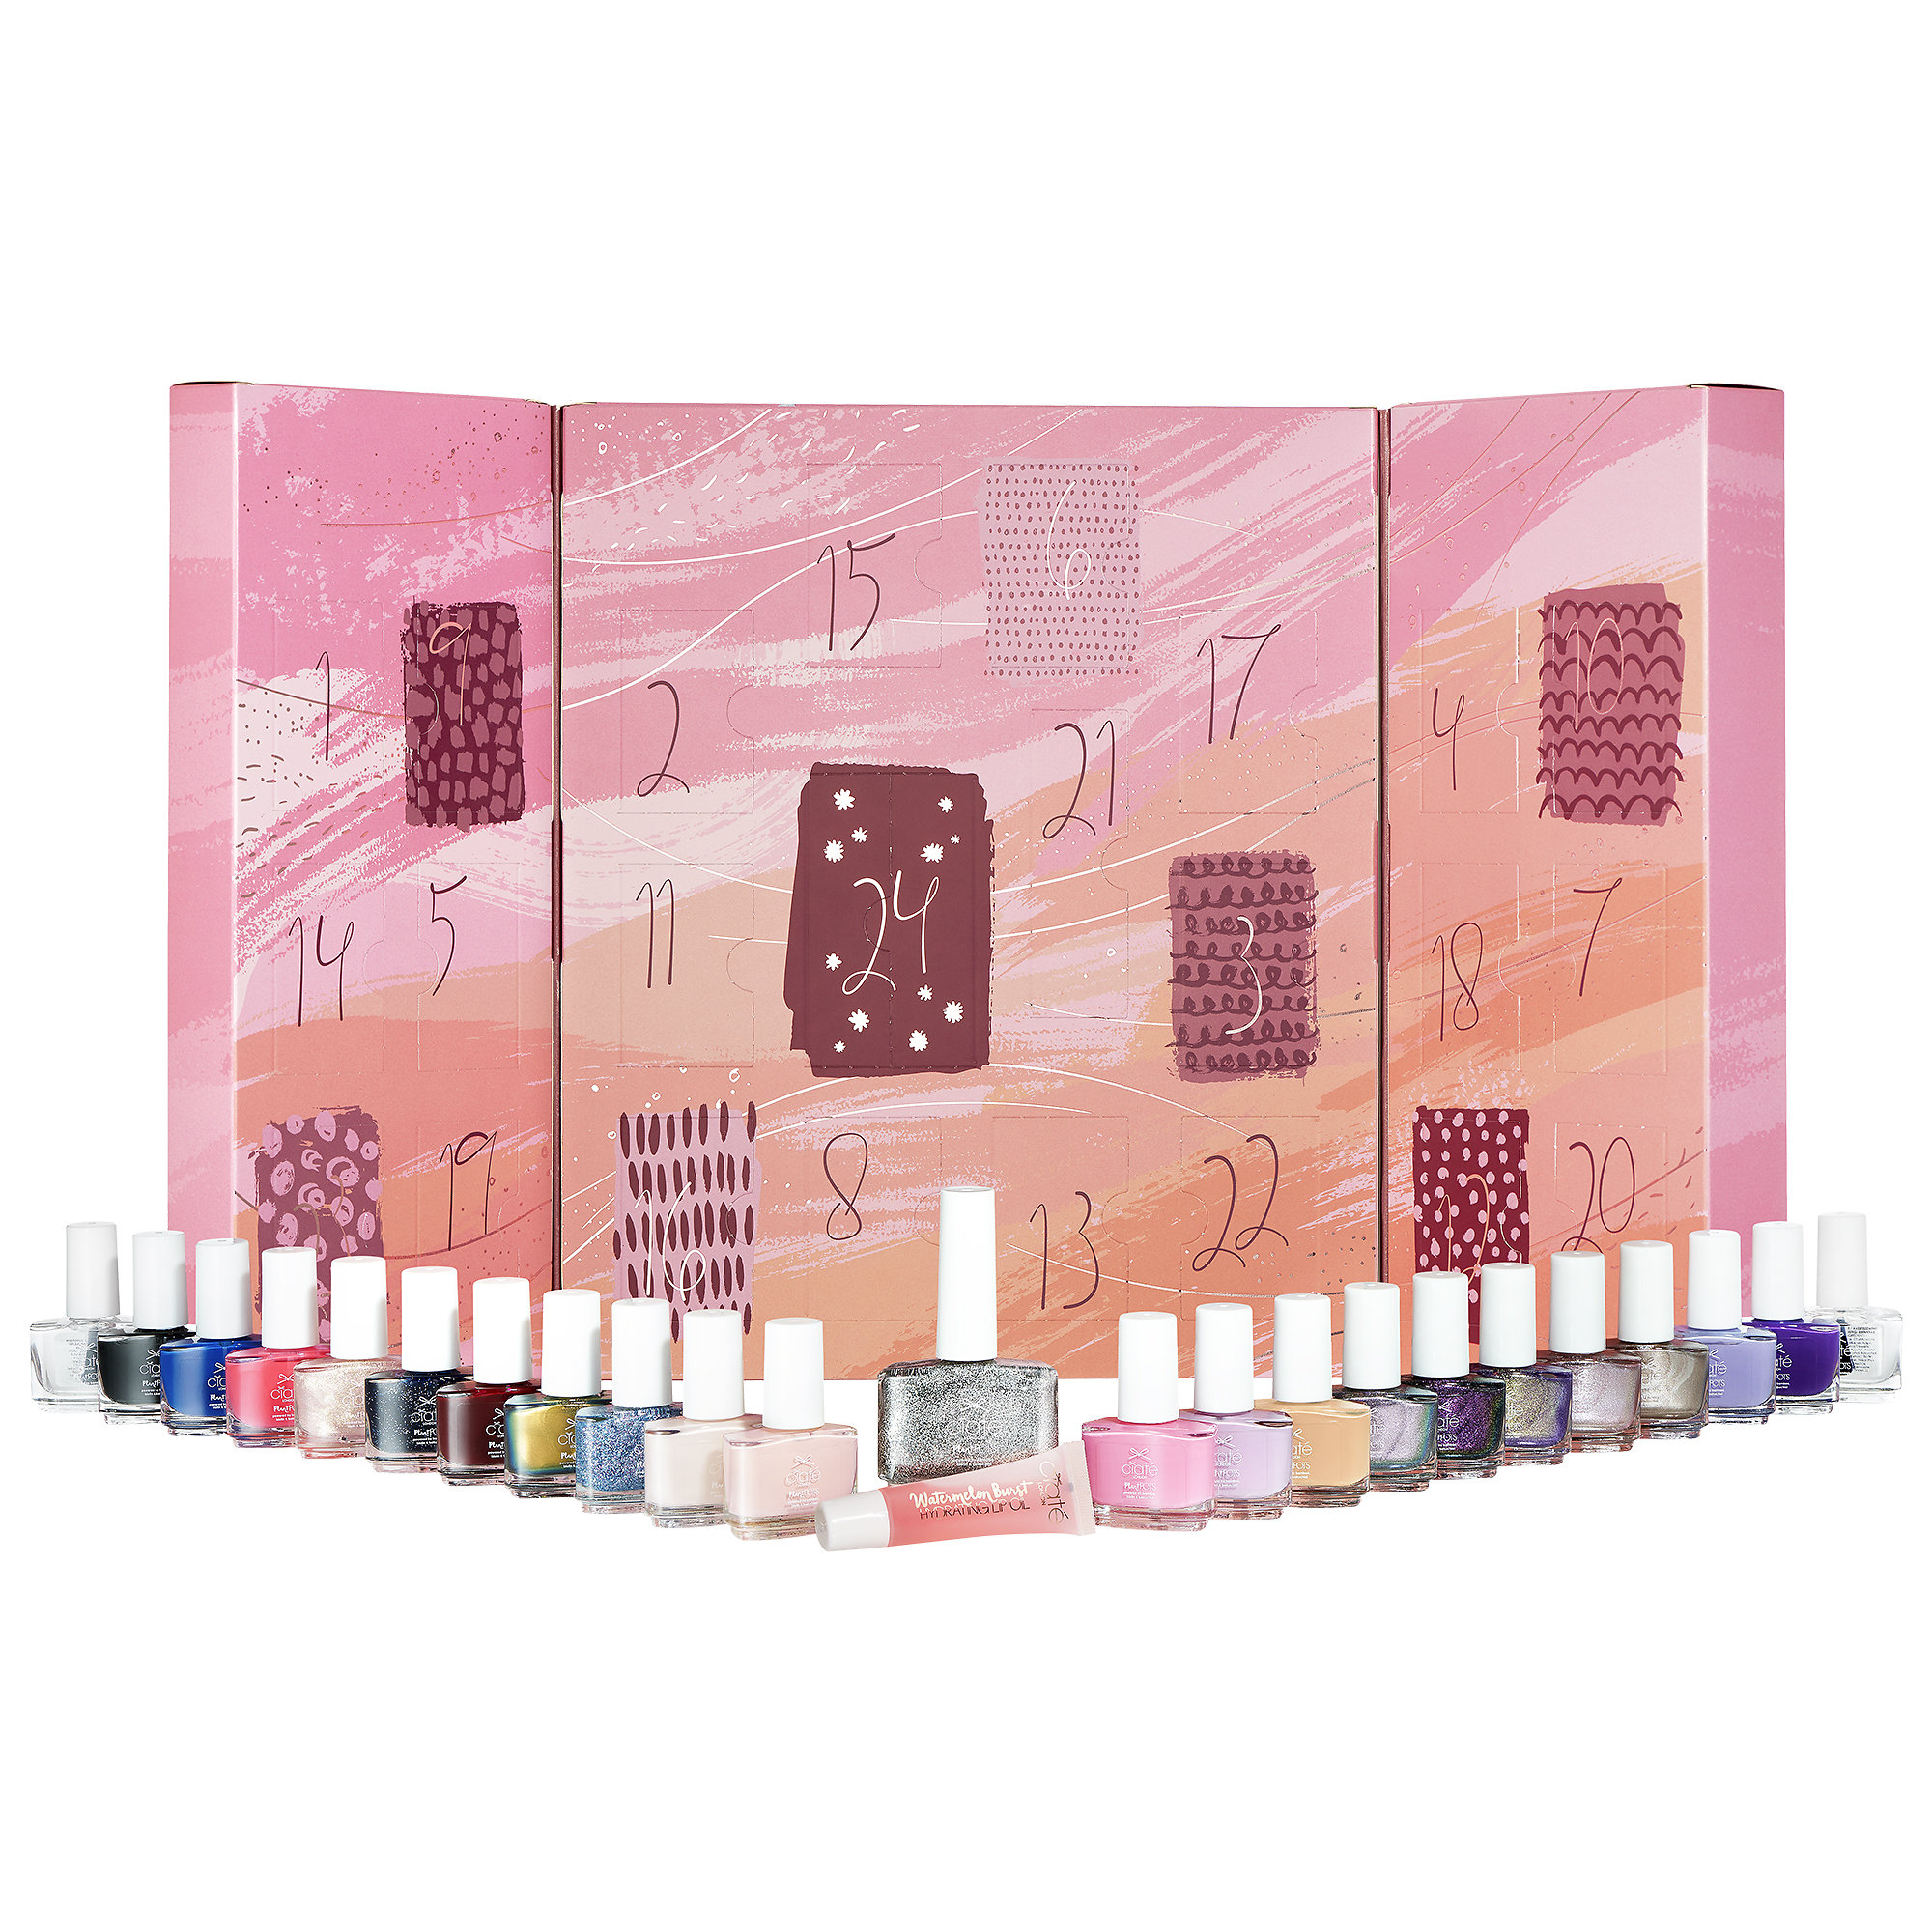 Ciate London - Mini Mani Month Nail Polish Advent Calendar